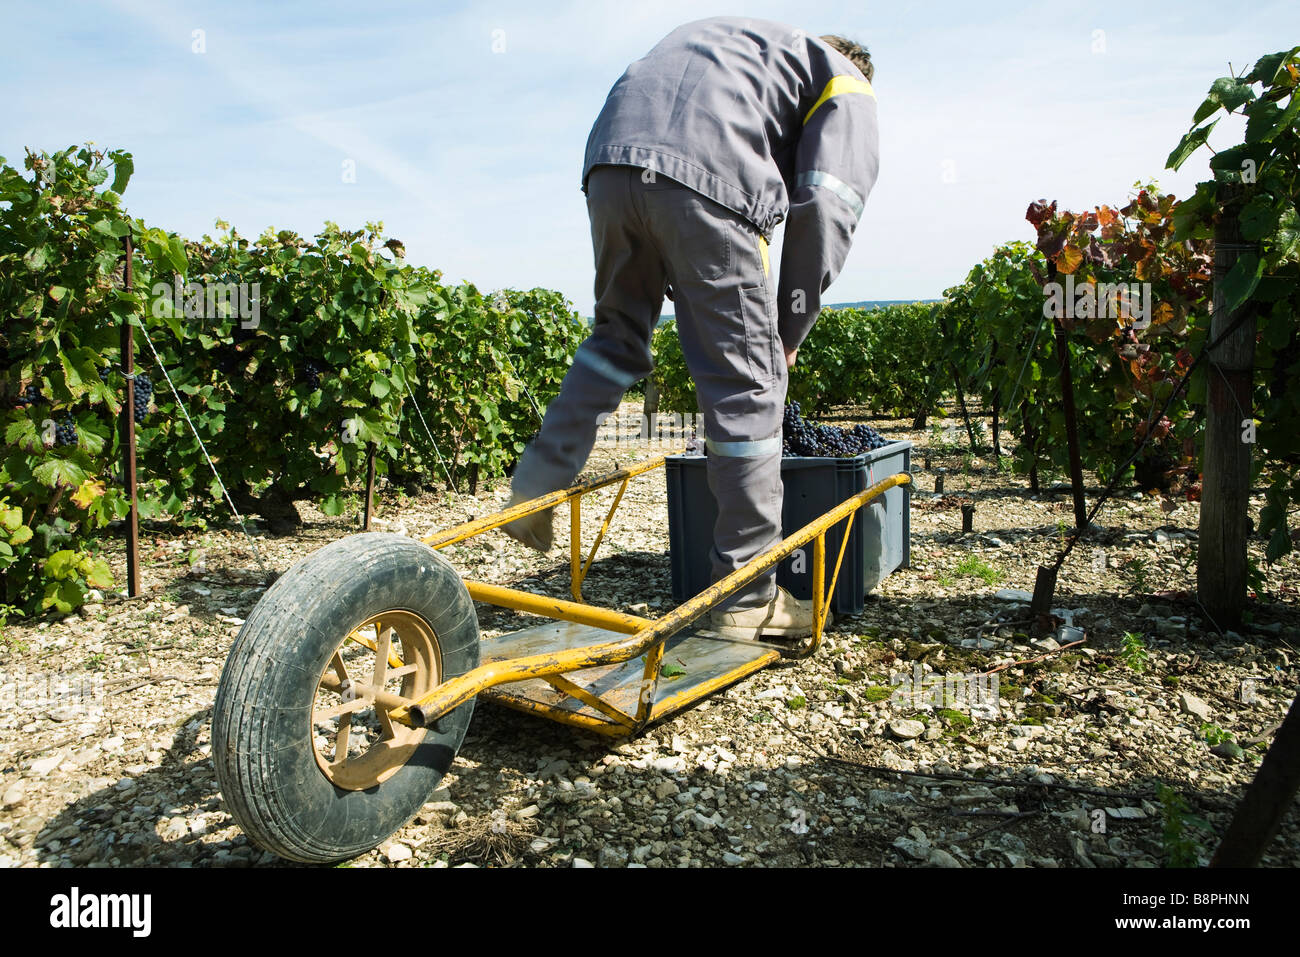 France, Champagne-Ardenne, Aube, vineyard worker putting grapes in plastic bin, wheelbarrow in foreground - Stock Image